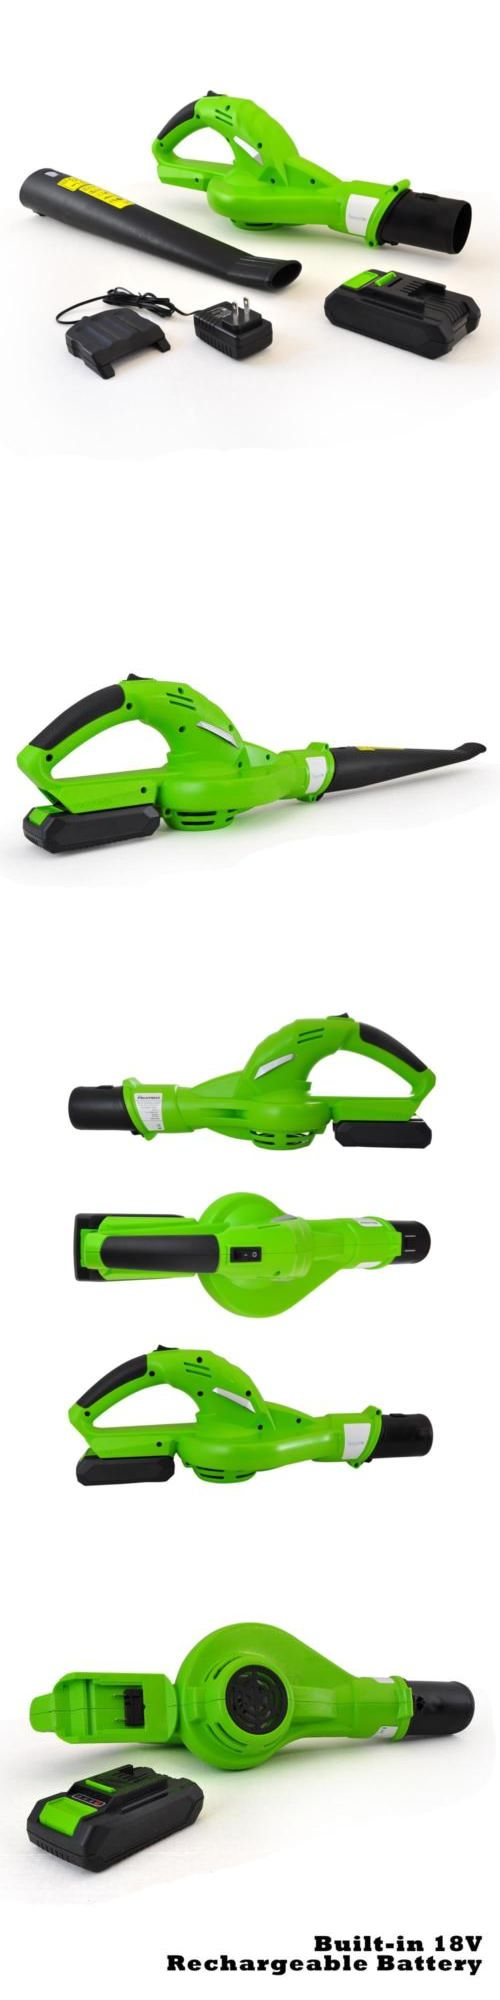 Leaf Blowers and Vacuums 71273: New Serenelife Electric Leaf Blower Cordless Power Blower W Rechargeable Battery -> BUY IT NOW ONLY: $84.95 on eBay!